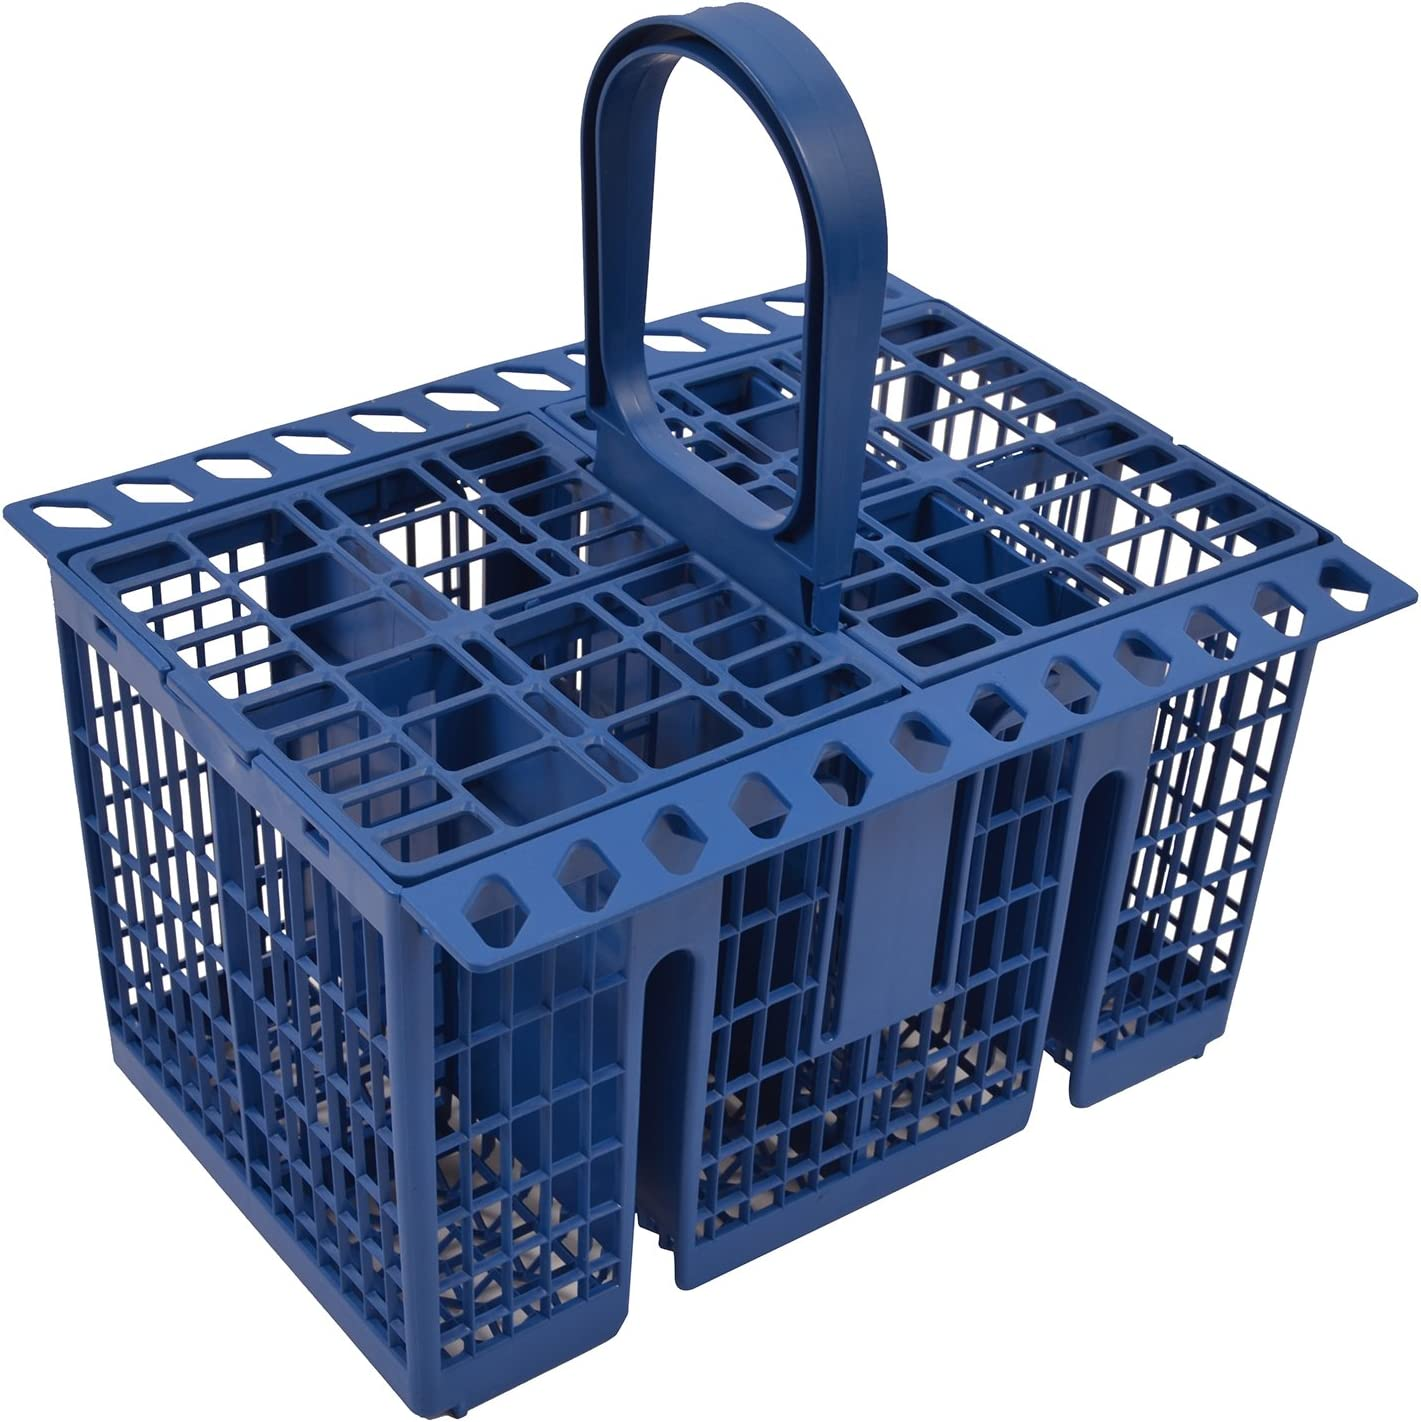 GENUINE BLUE Hotpoint Dishwasher Cutlery Basket To Fit Models See Bullet Points